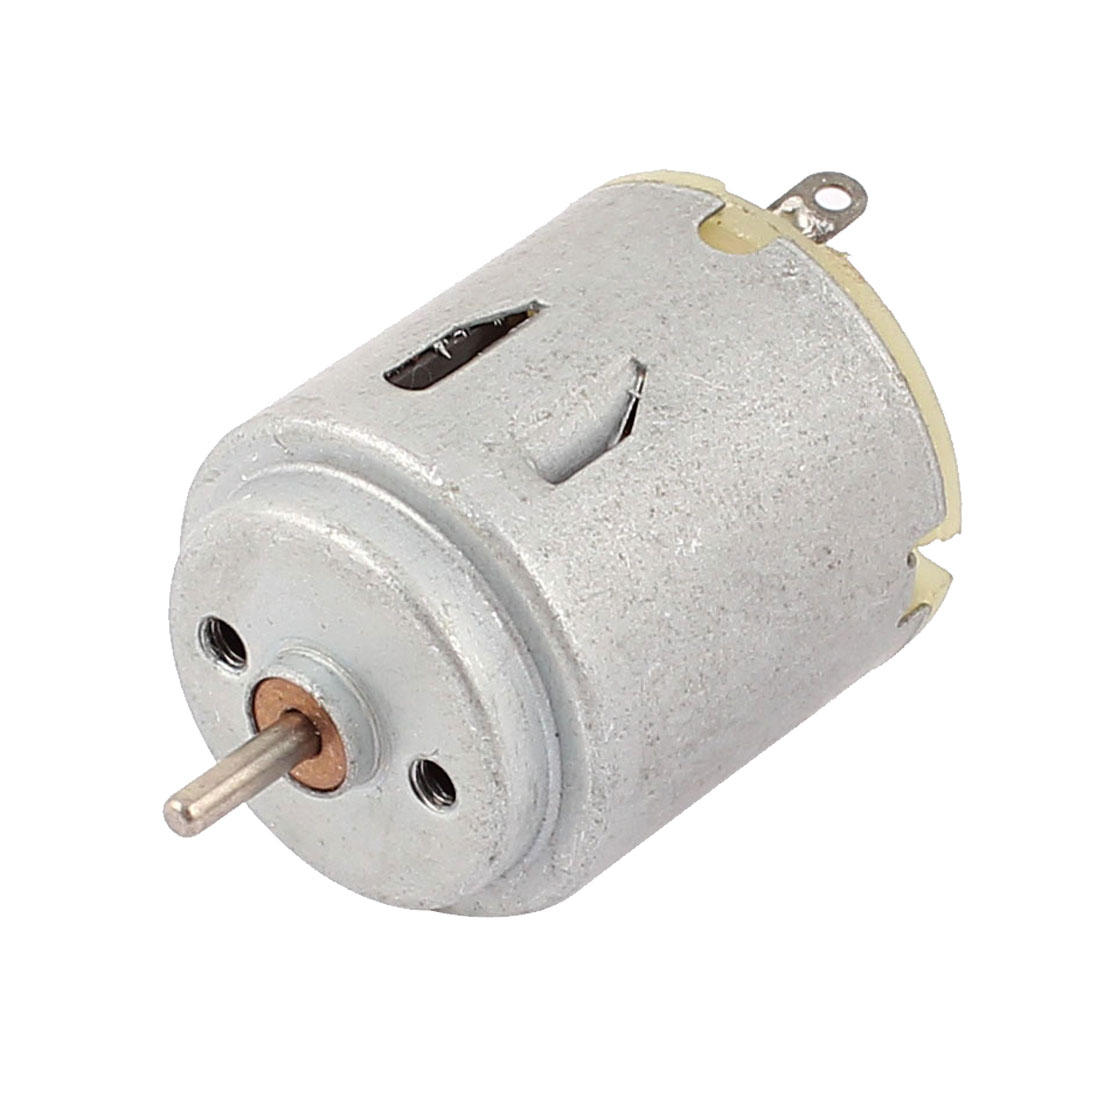 Round Type 6V 8000RPM 2mm Shaft Dia DC Motor for Smart Cars DIY Toys